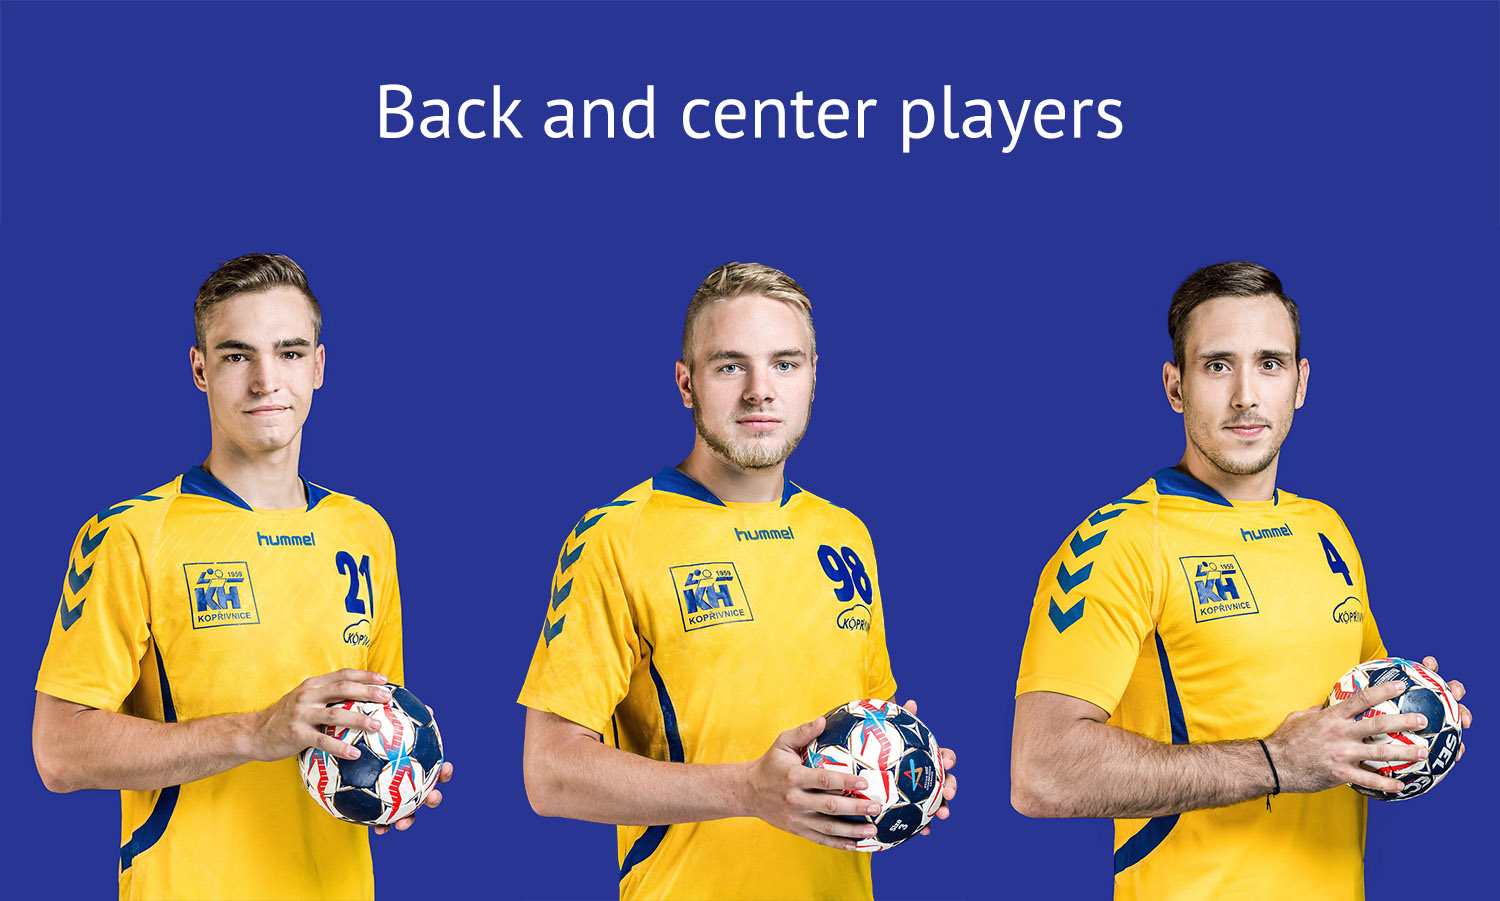 back_and_center_players_02.jpg